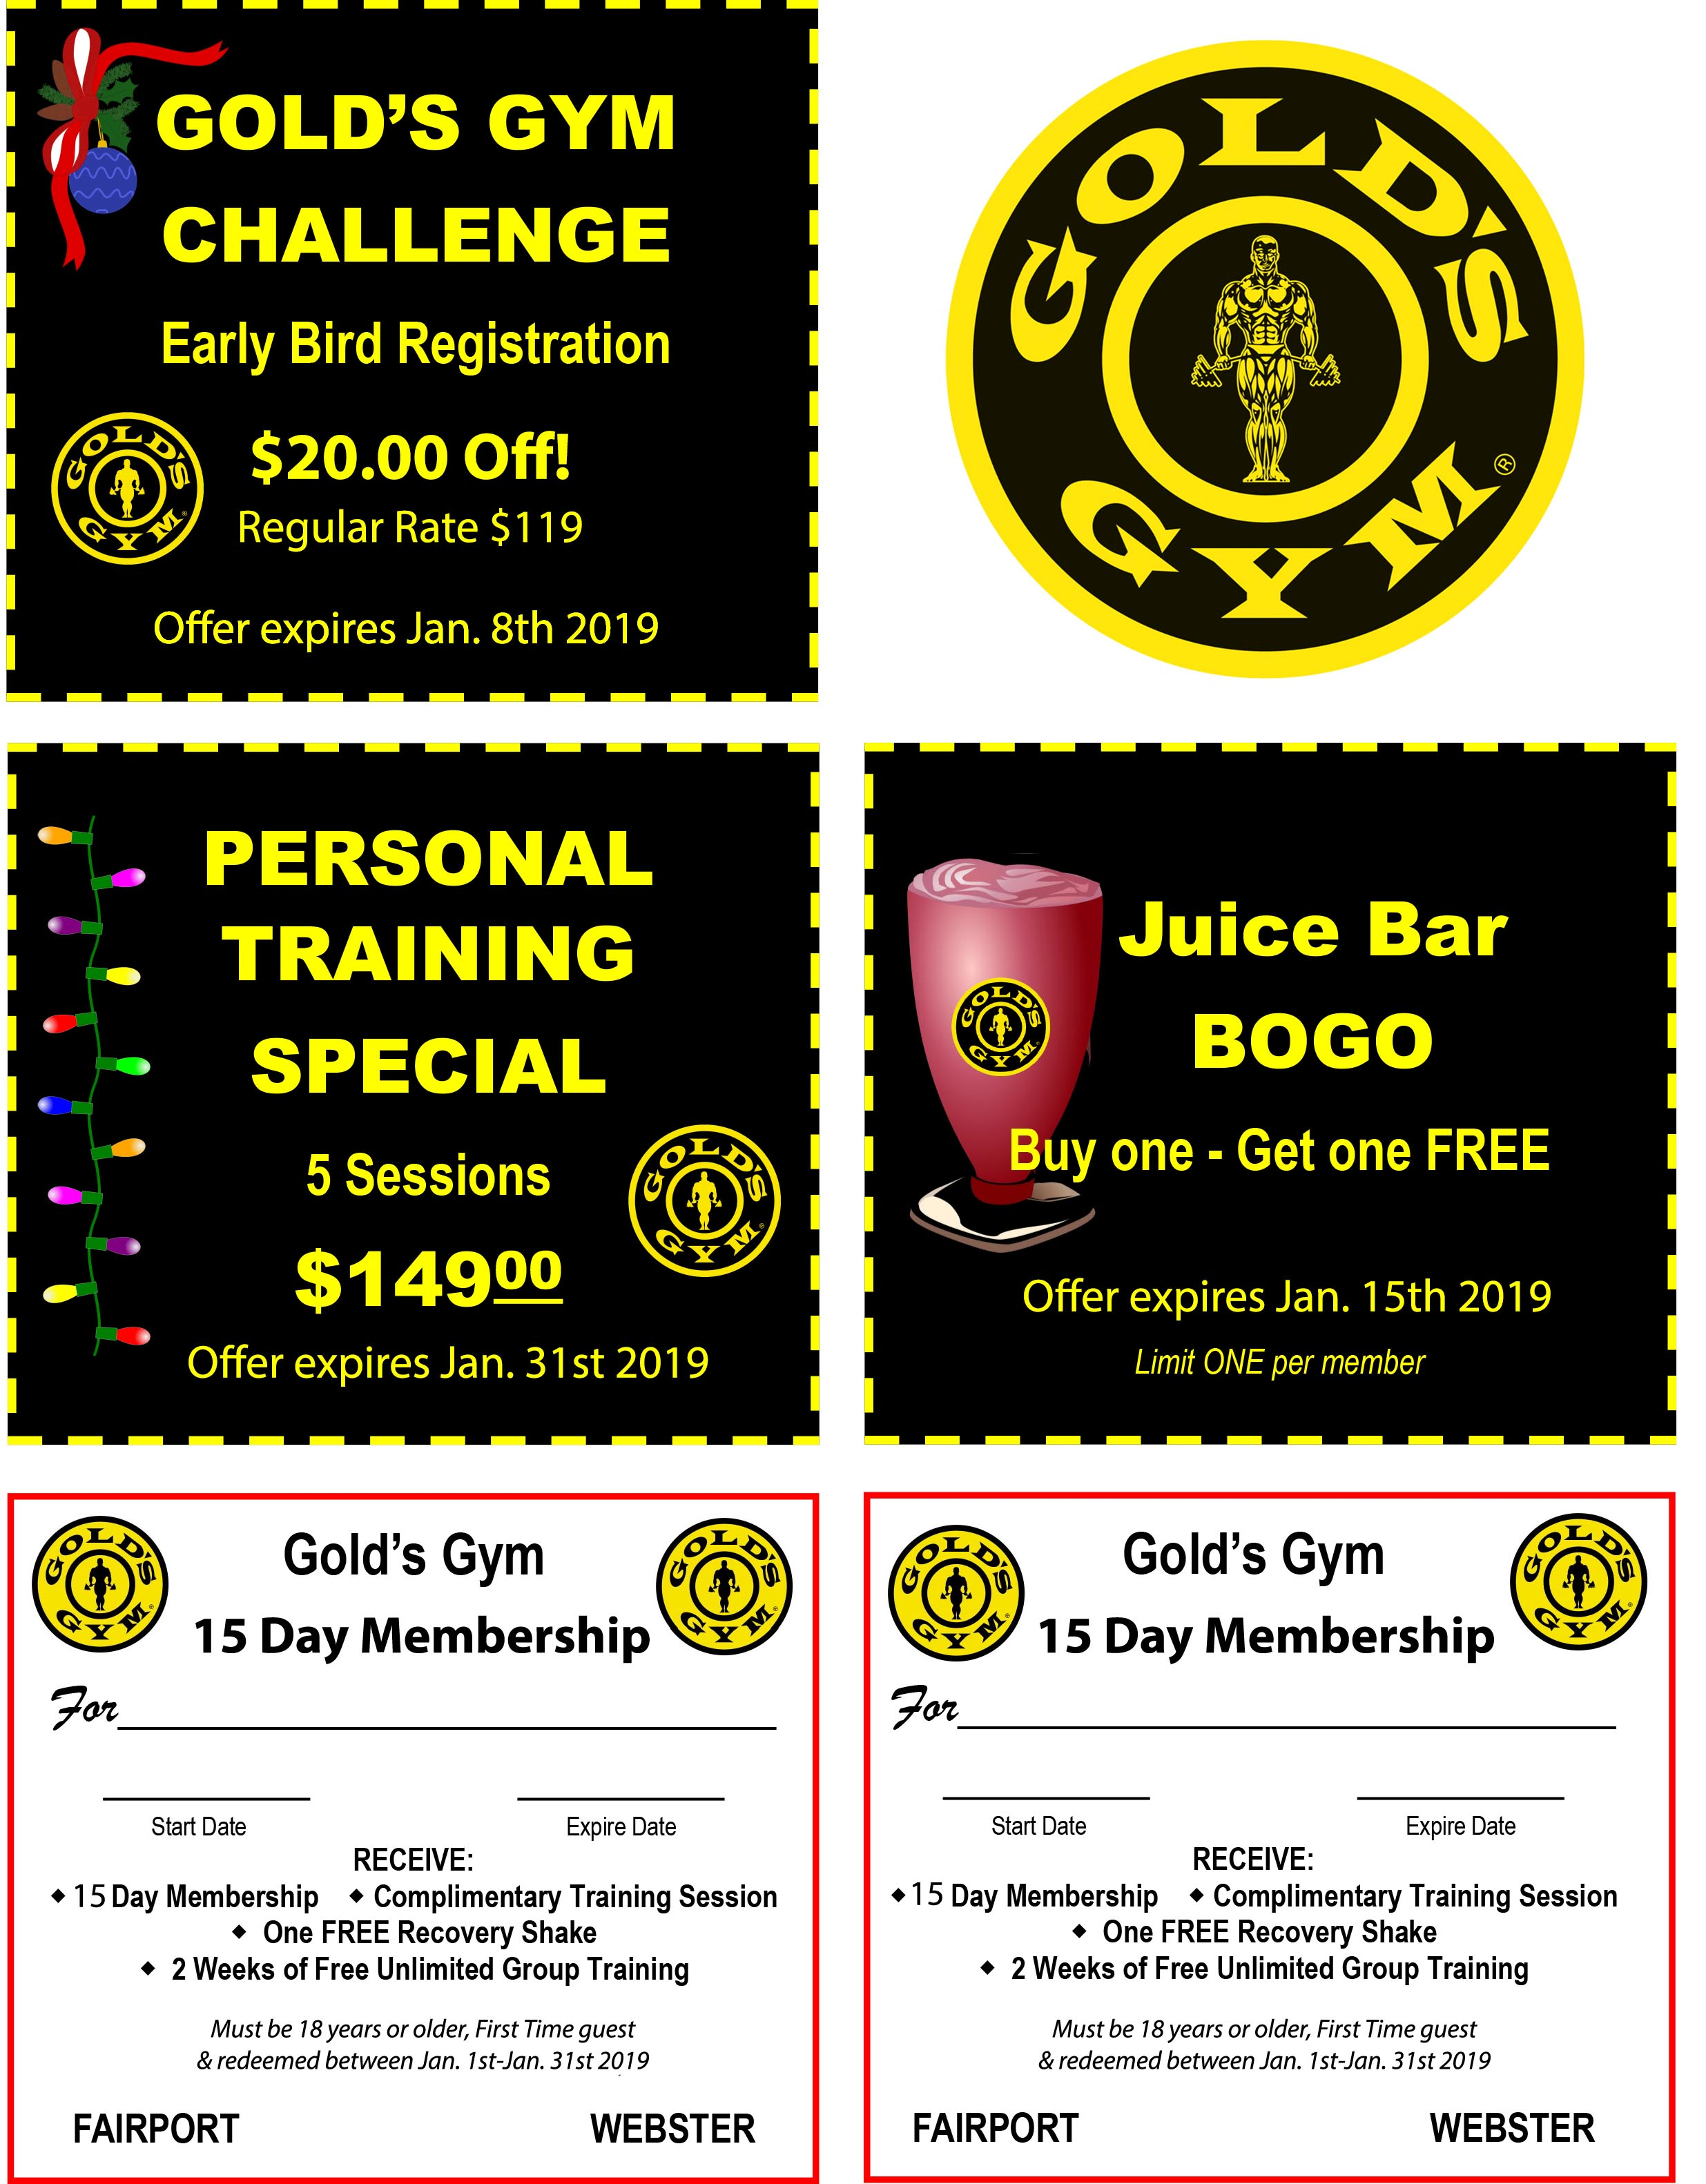 These are digital coupons. You can either show your phone at the club or print them out and use.